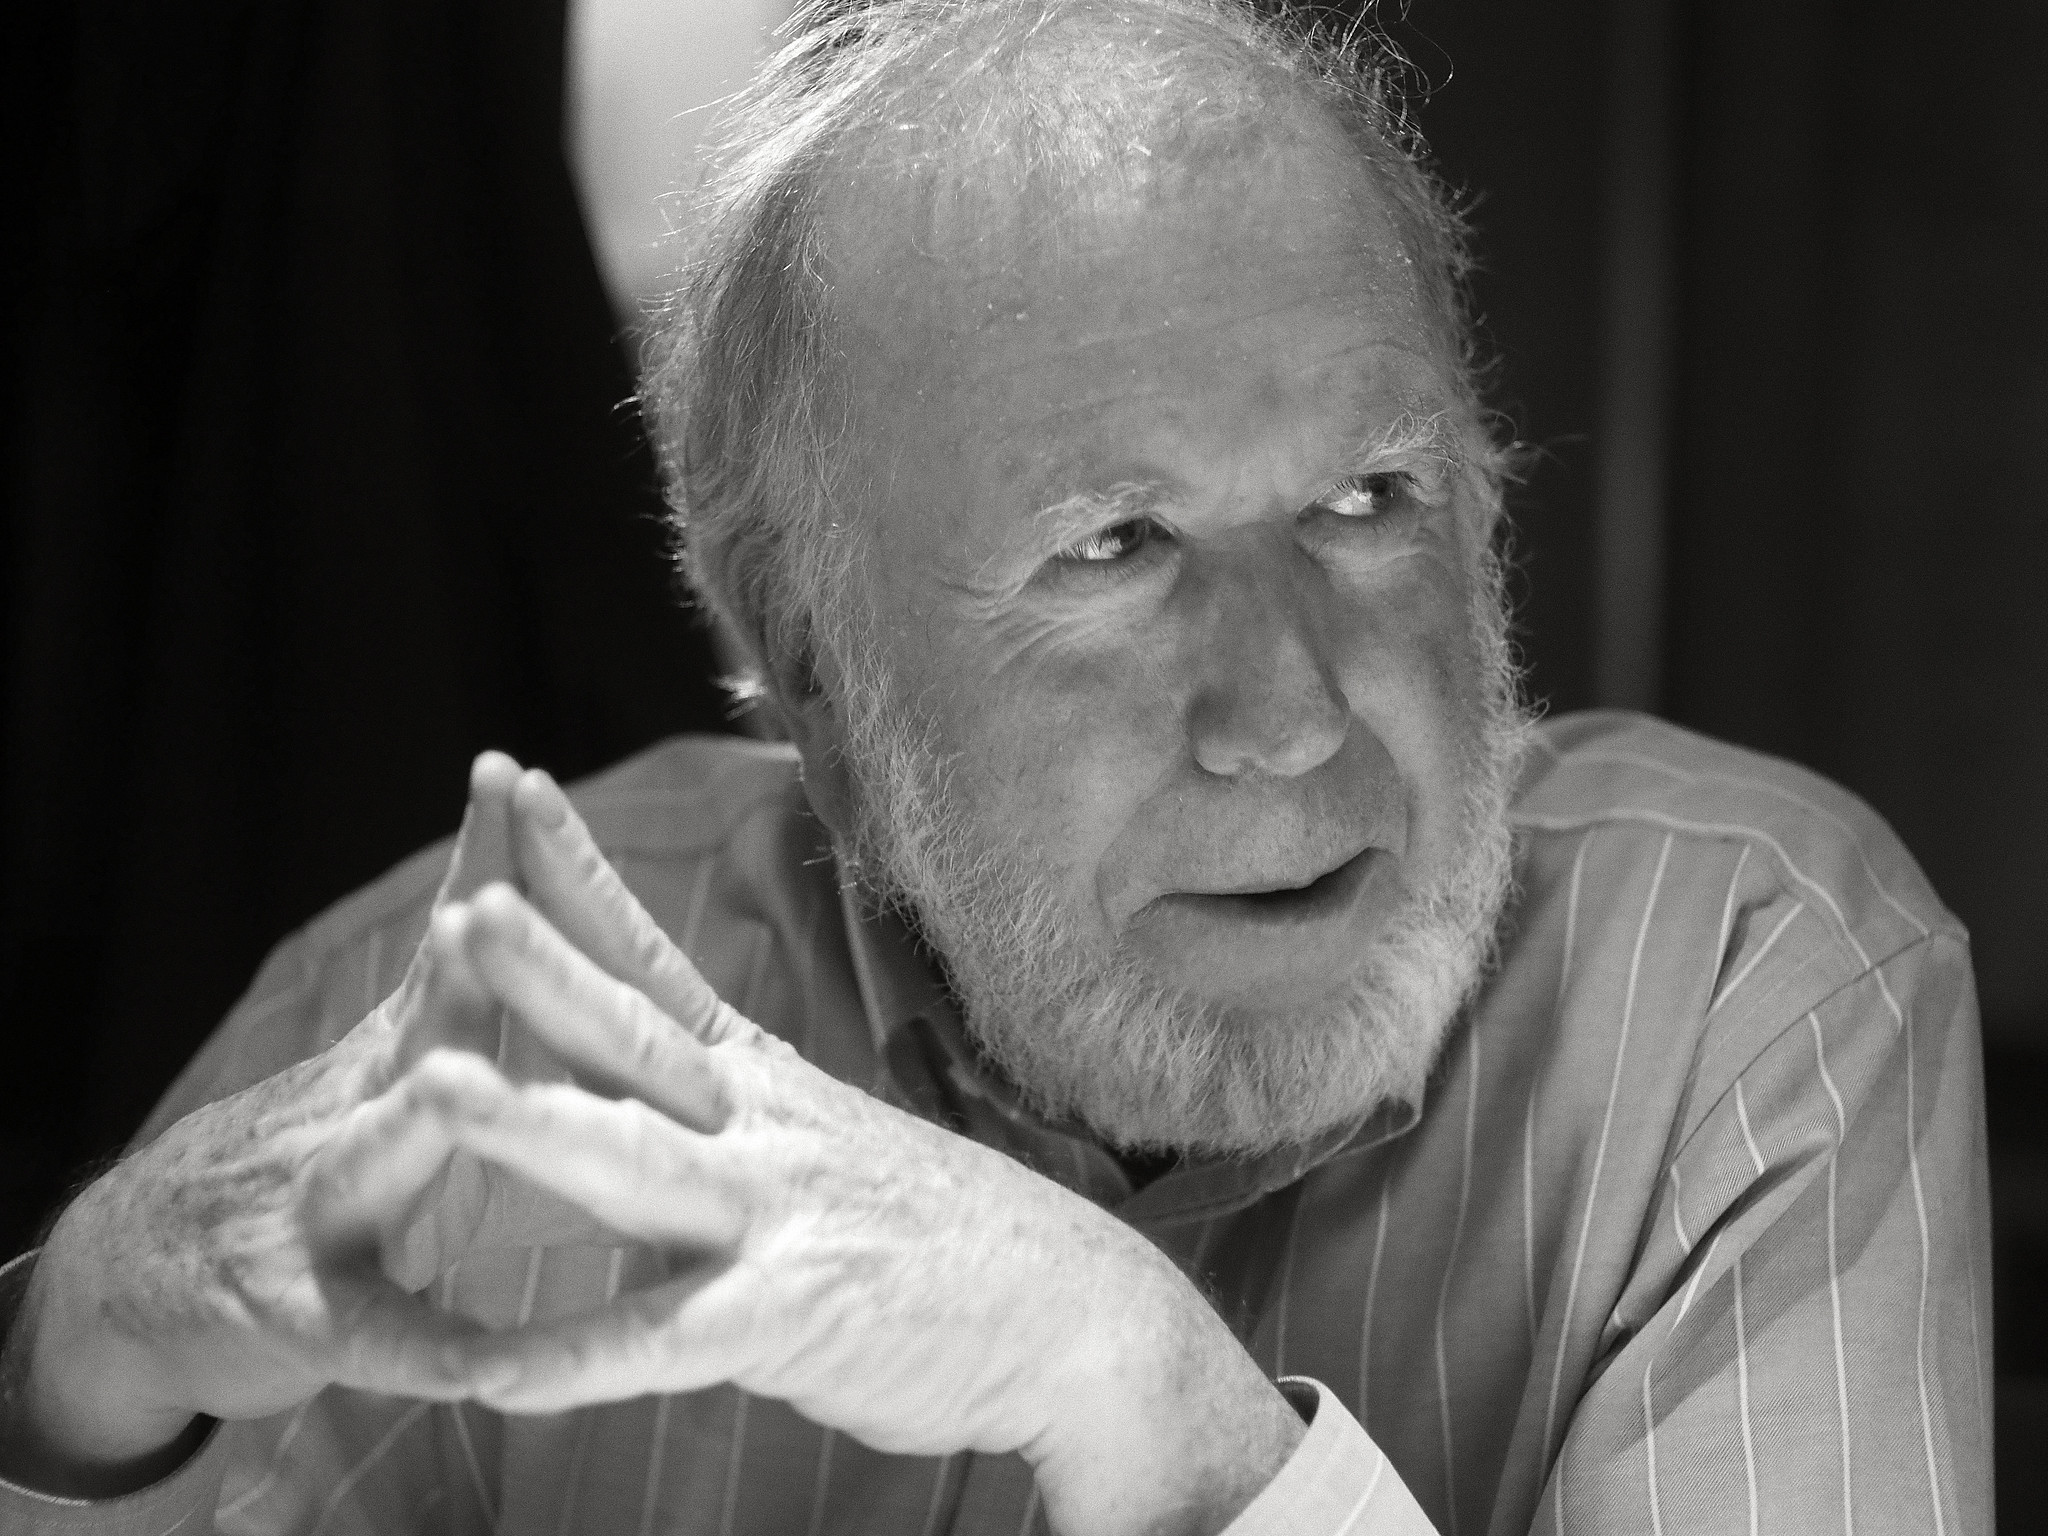 Kevin-Kelly-wired-1